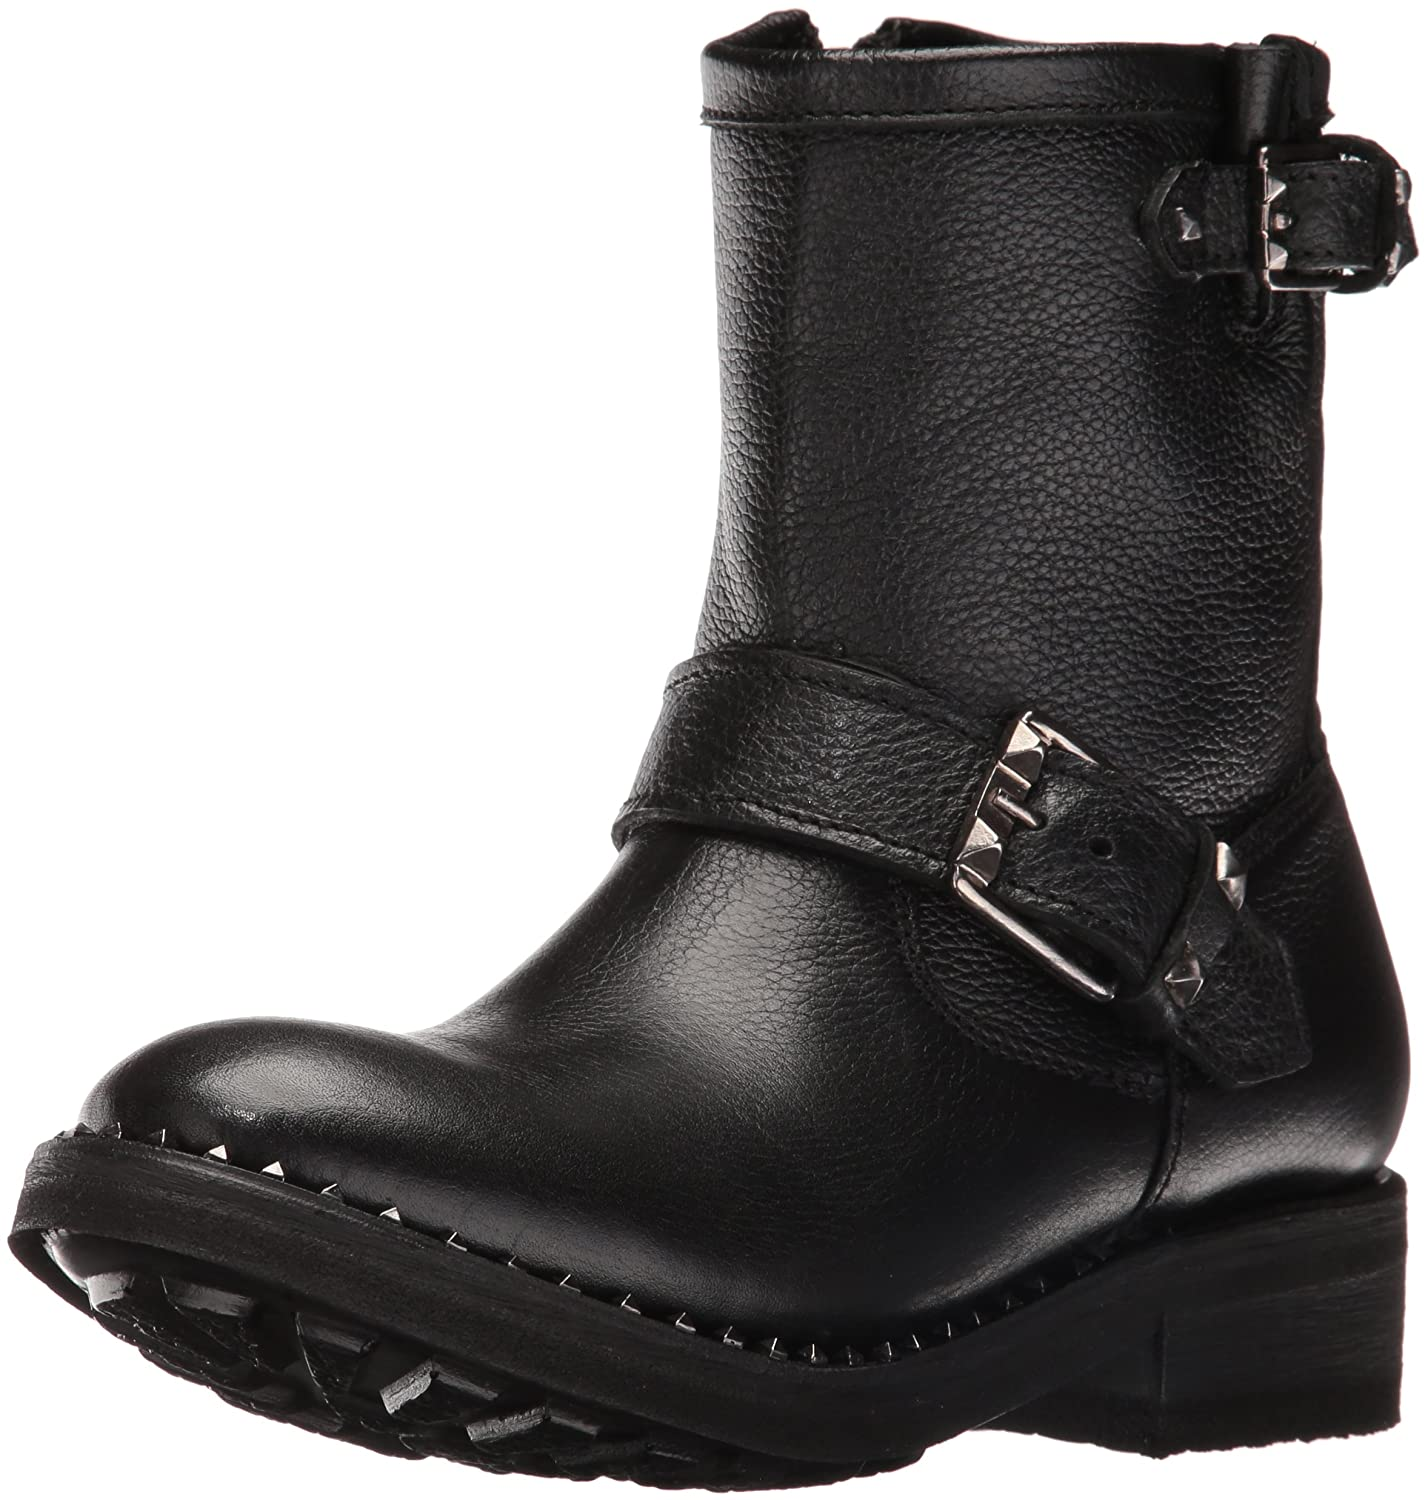 Ash Women's Soho Motorcycle Boot B01H2KT8IU 37 M EU / 7 B(M) US|Black